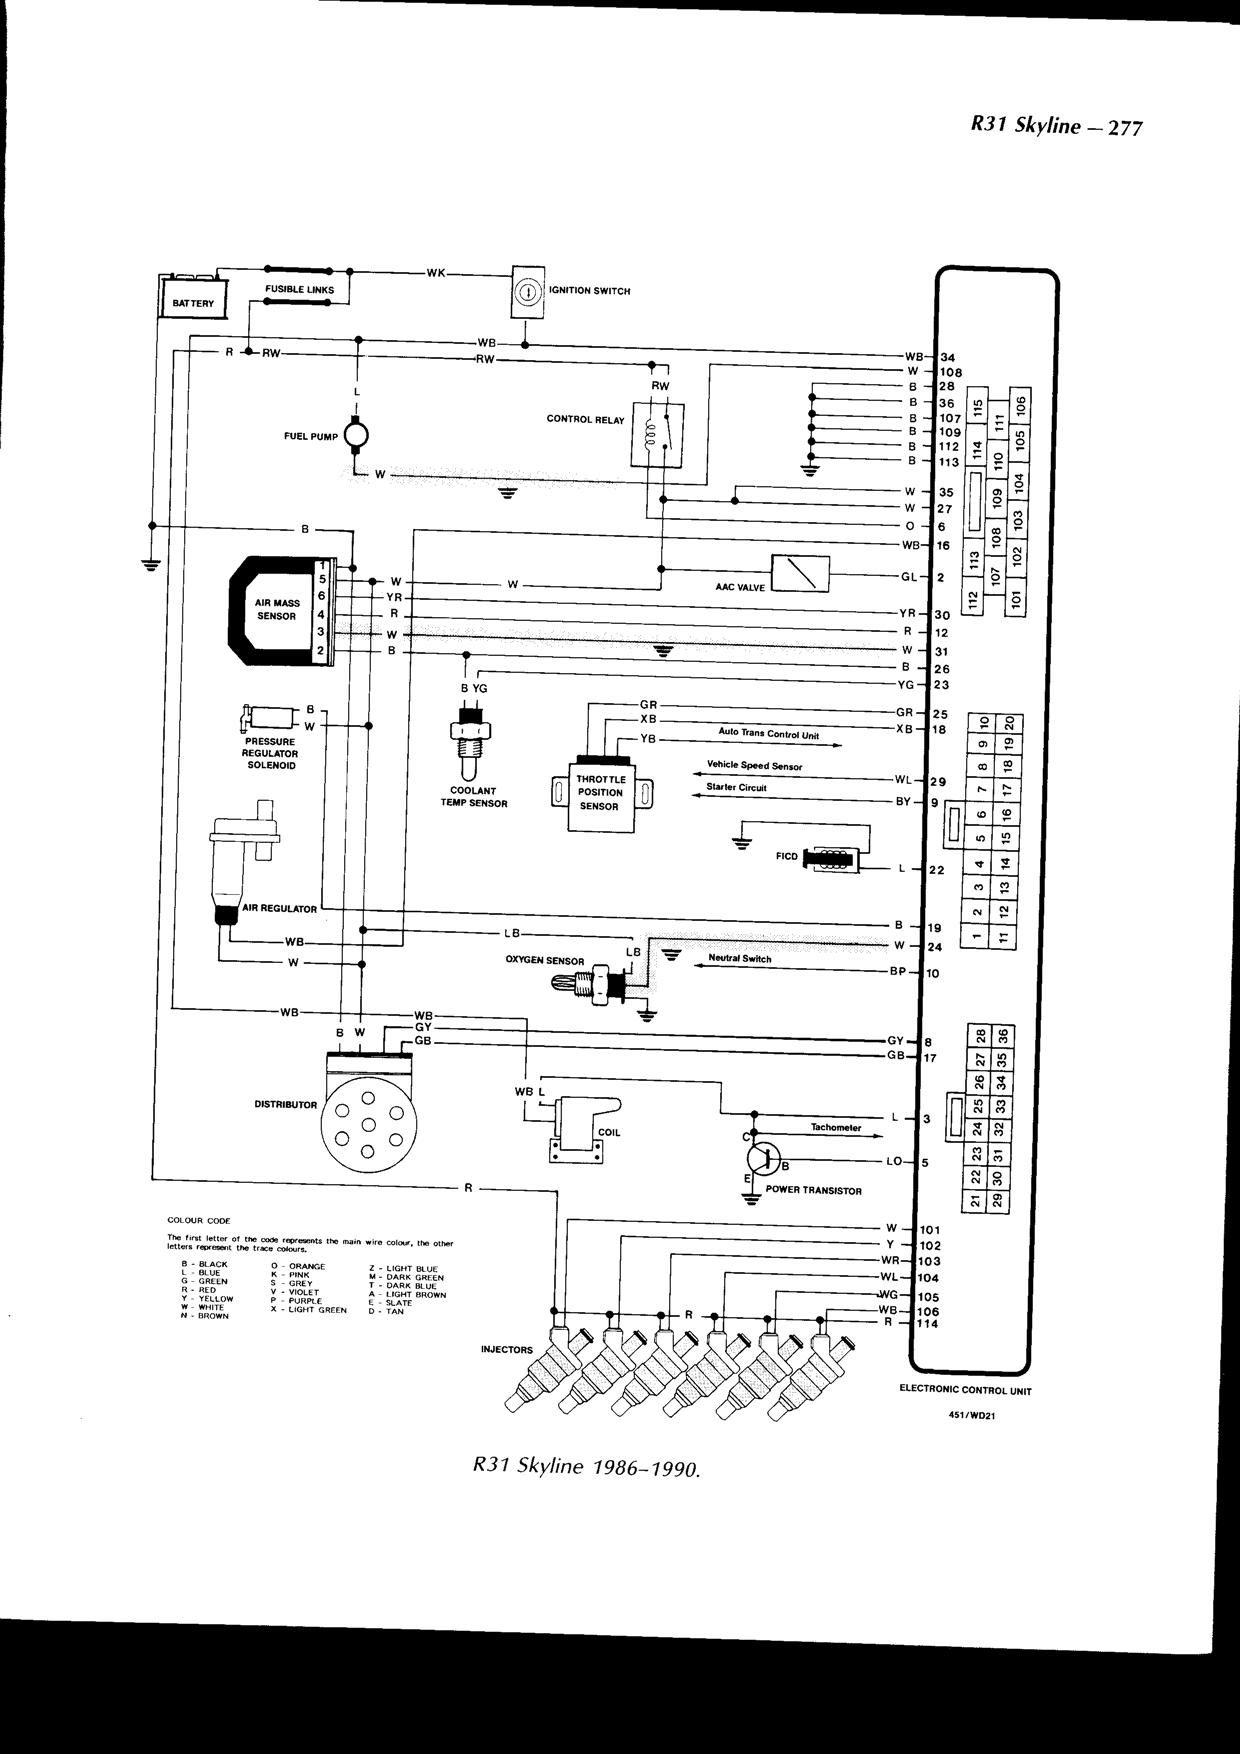 Wiring Diagram On Maserati Biturbo Wiring As Well Maserati Biturbo